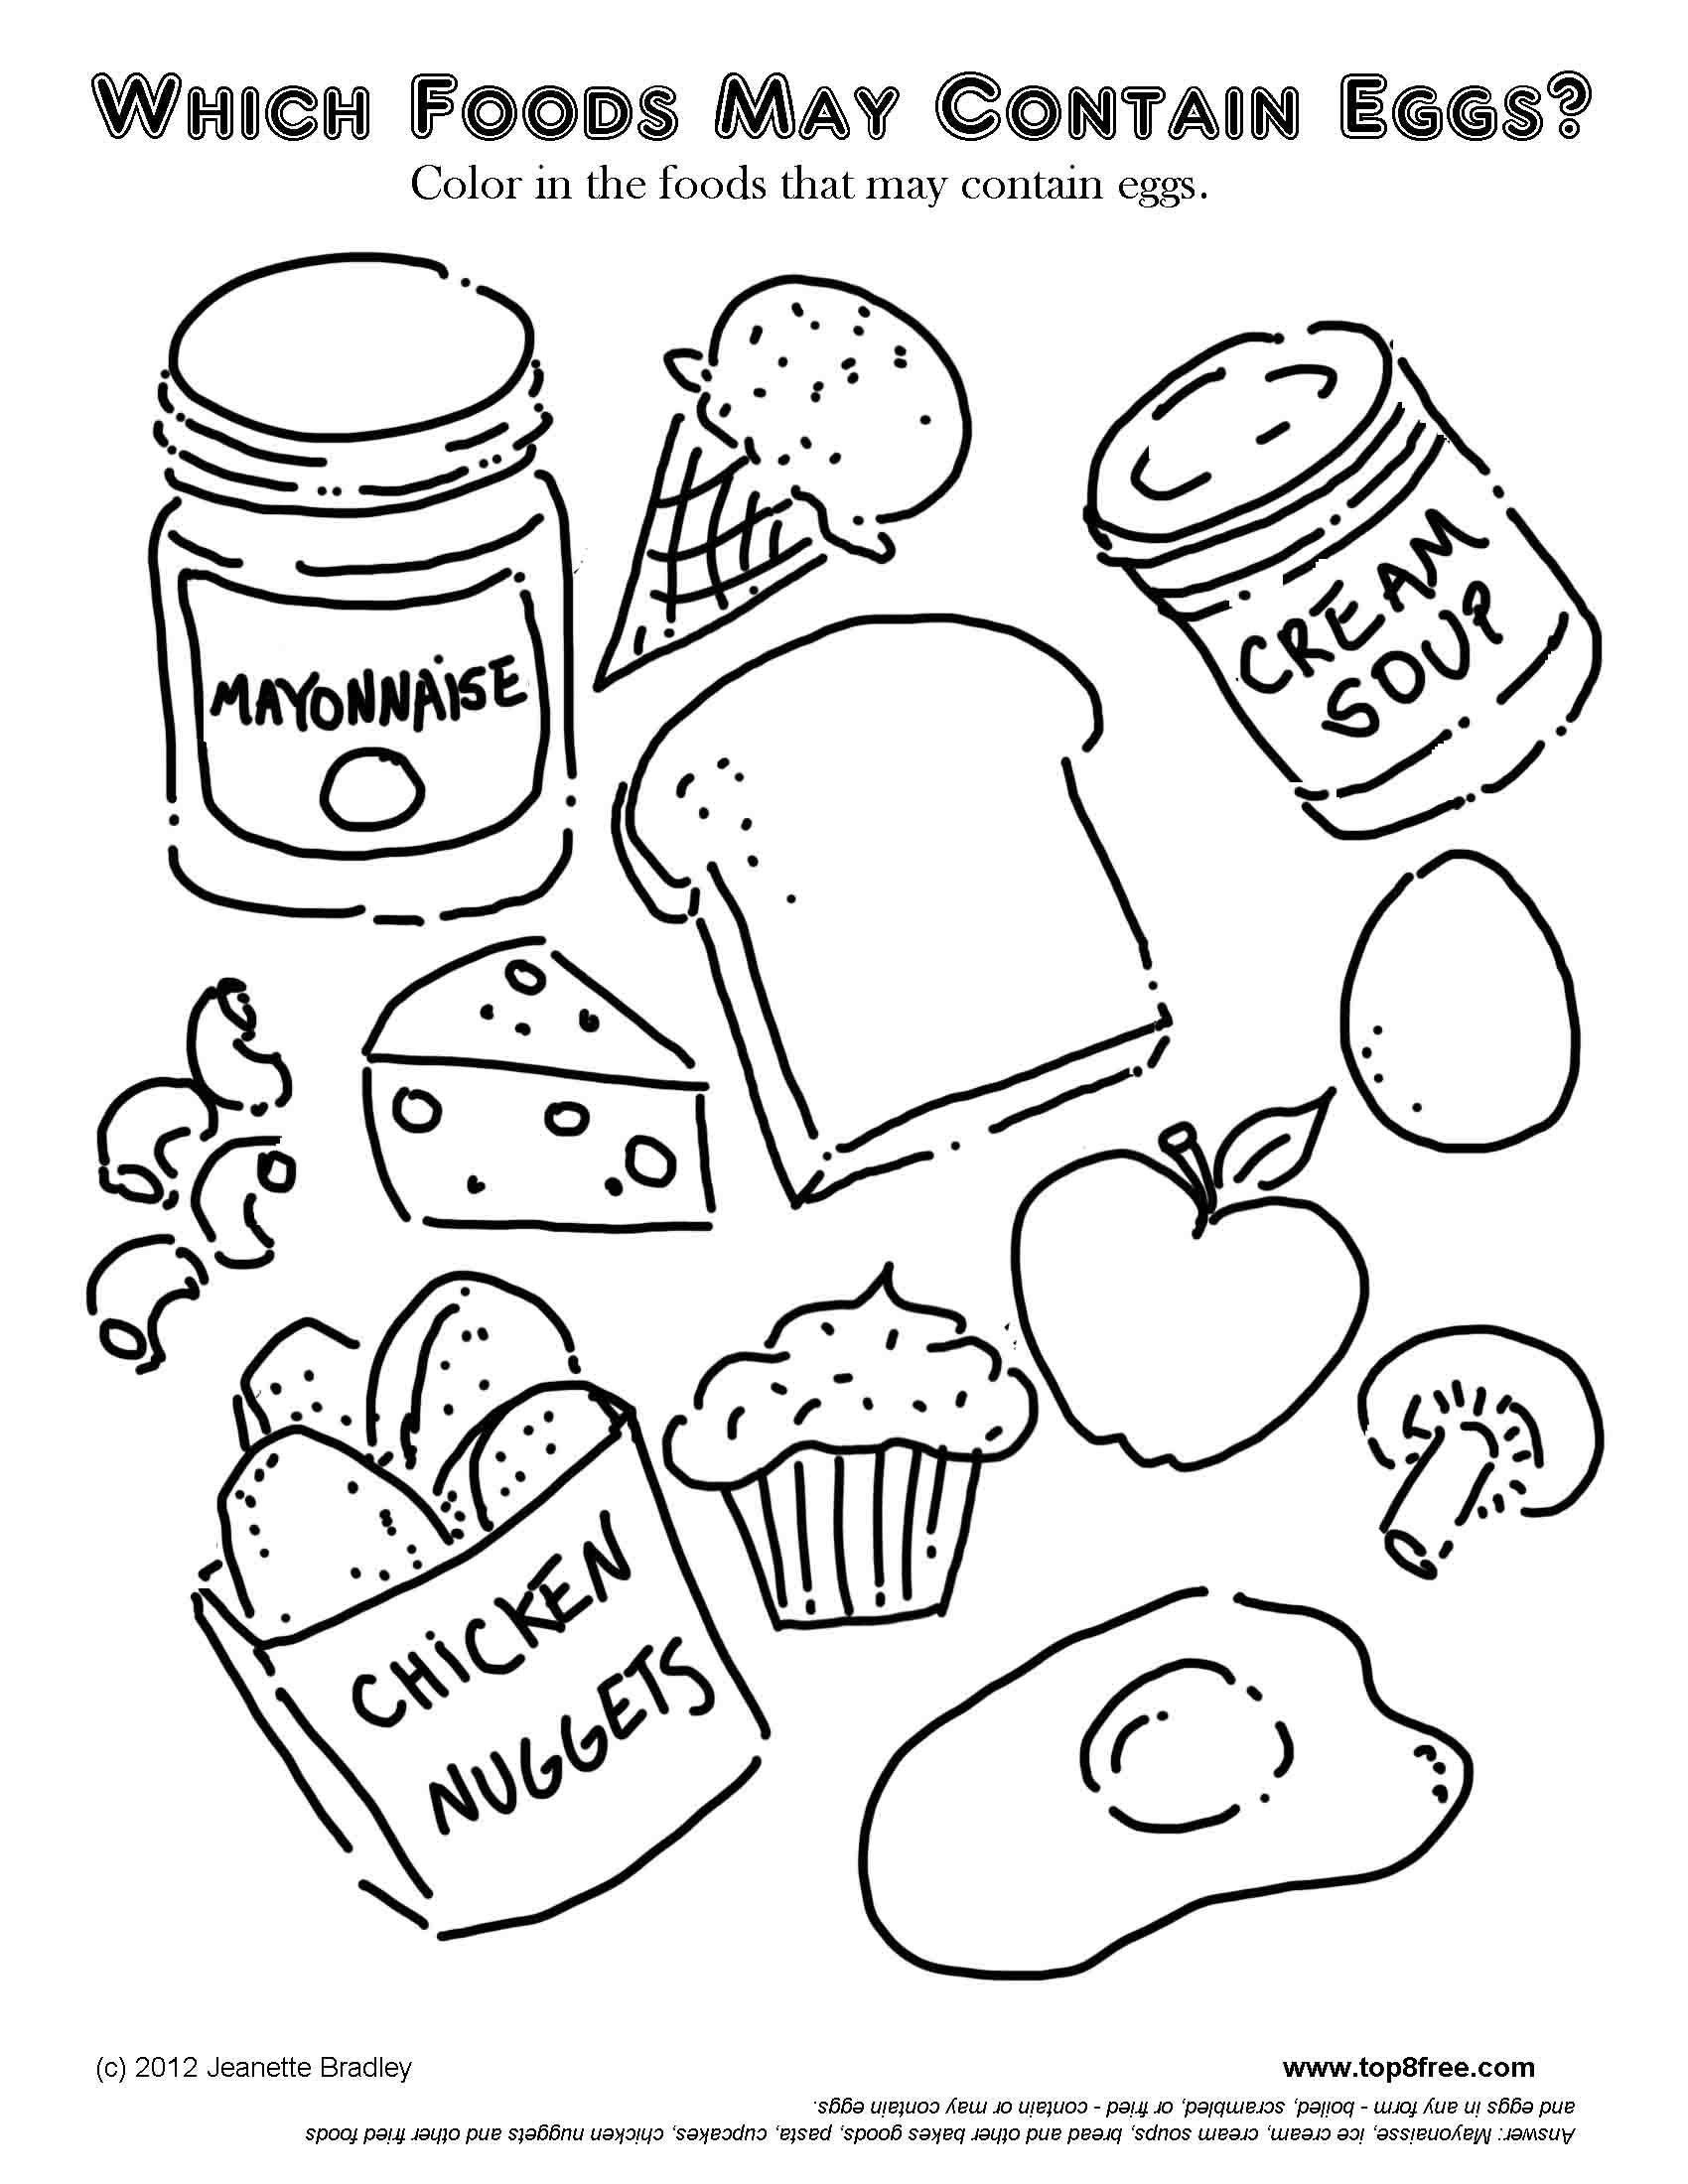 coloring pages food cute food coloring pages coloring pages to download and food coloring pages